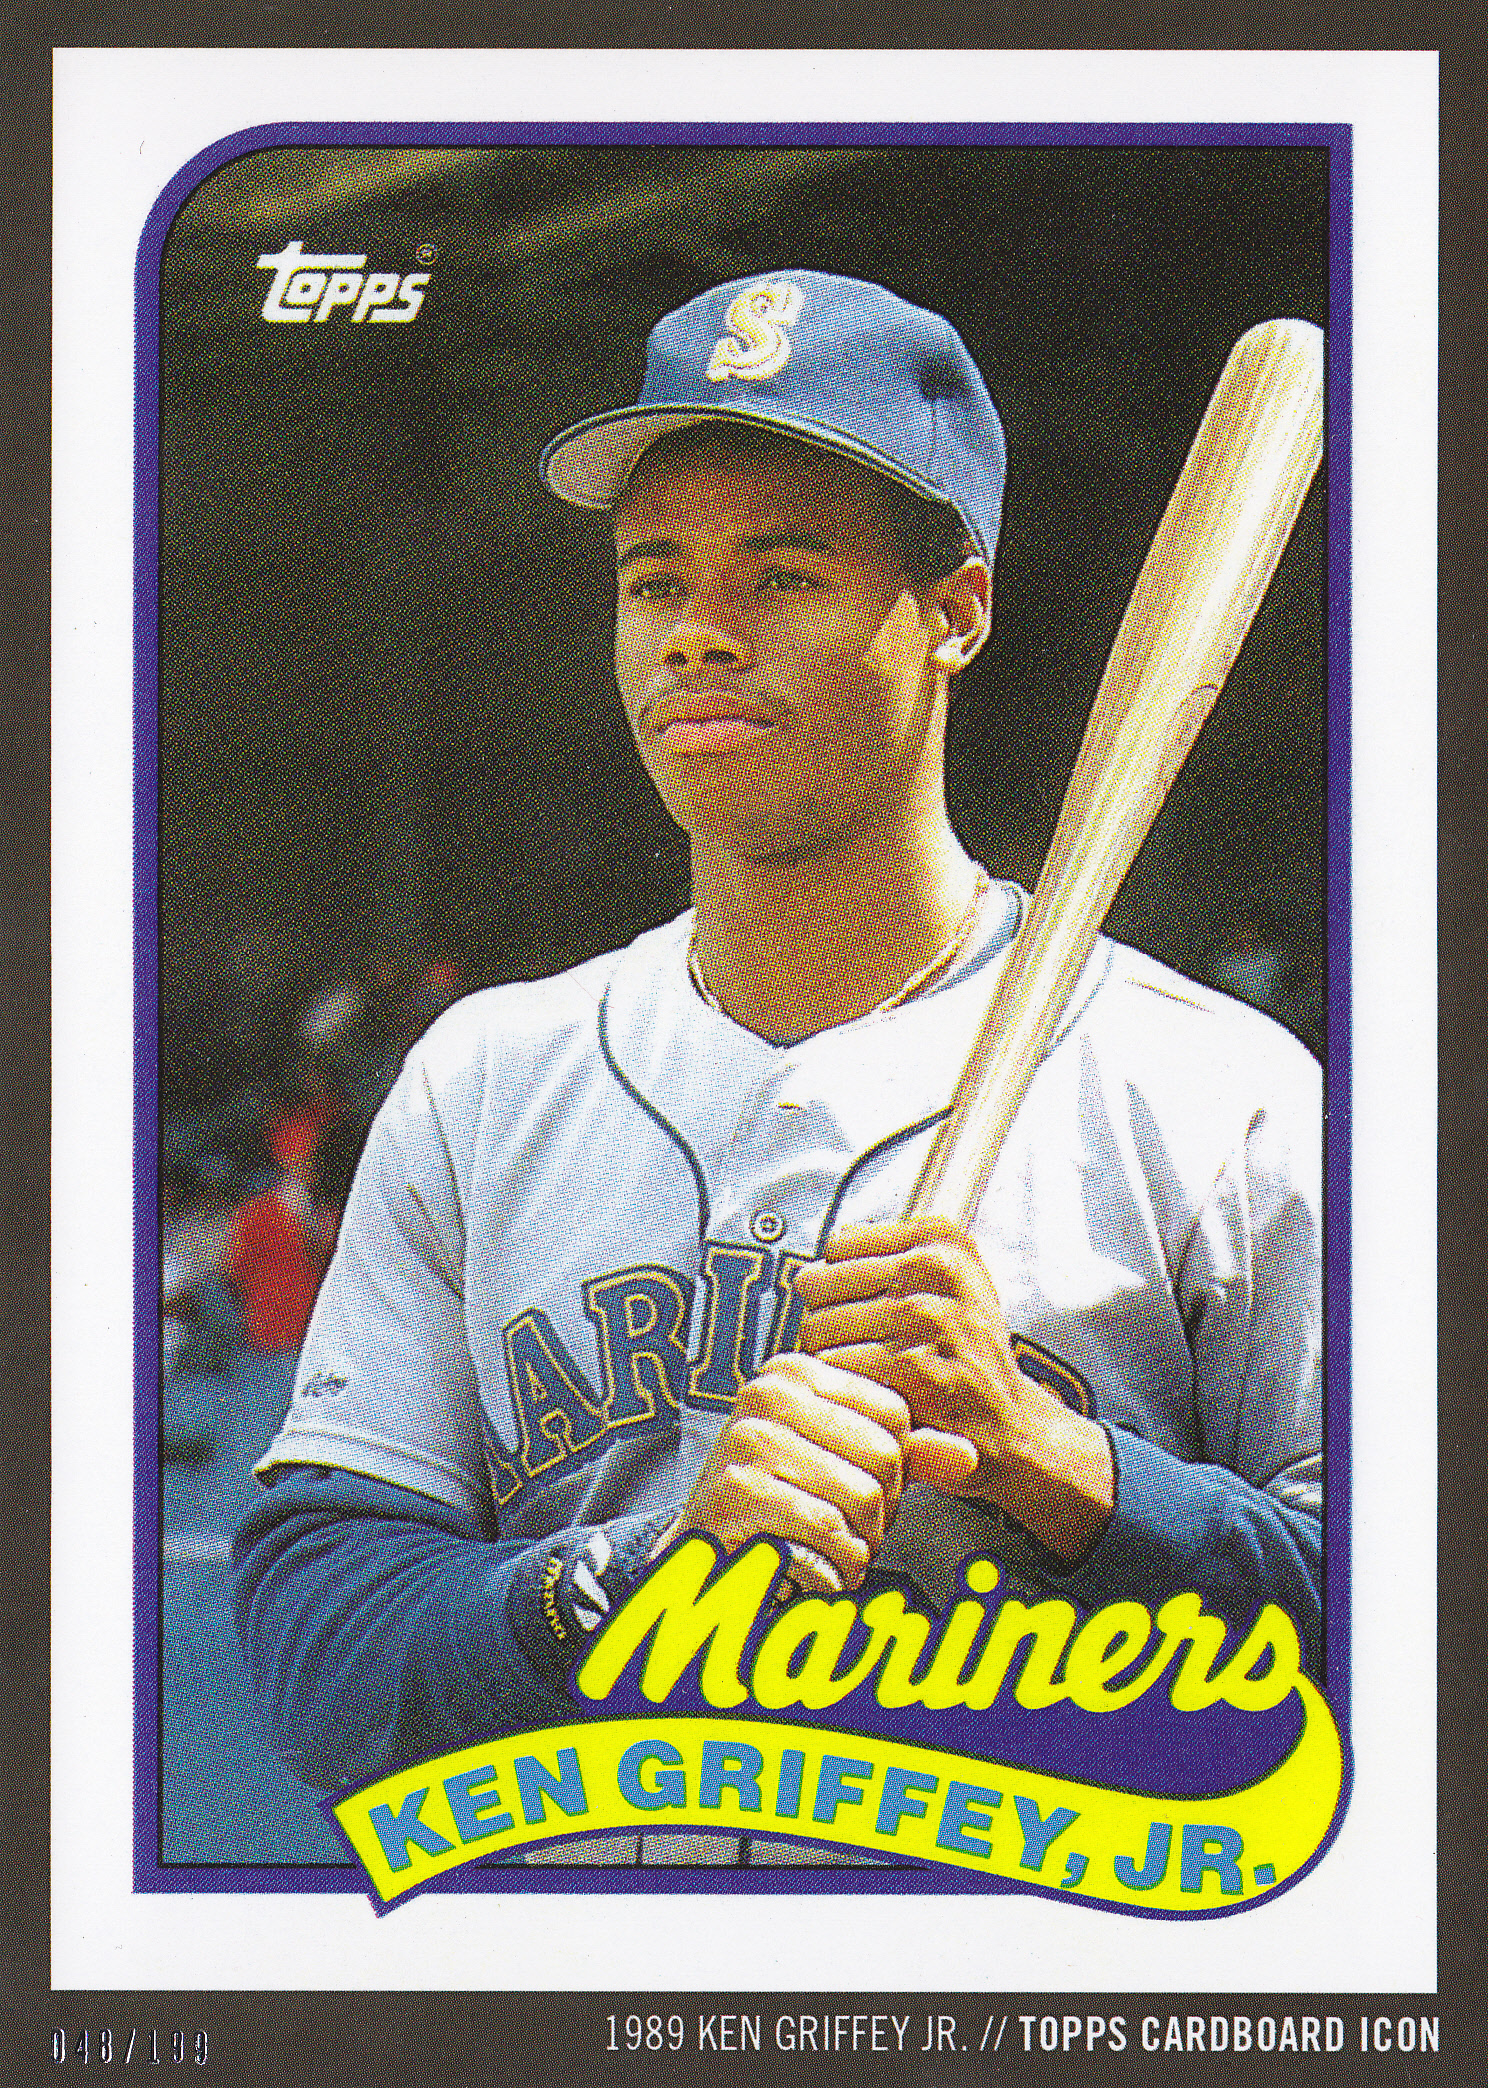 Ranking The Top Rookie Baseball Card Classes From Topps For The Last